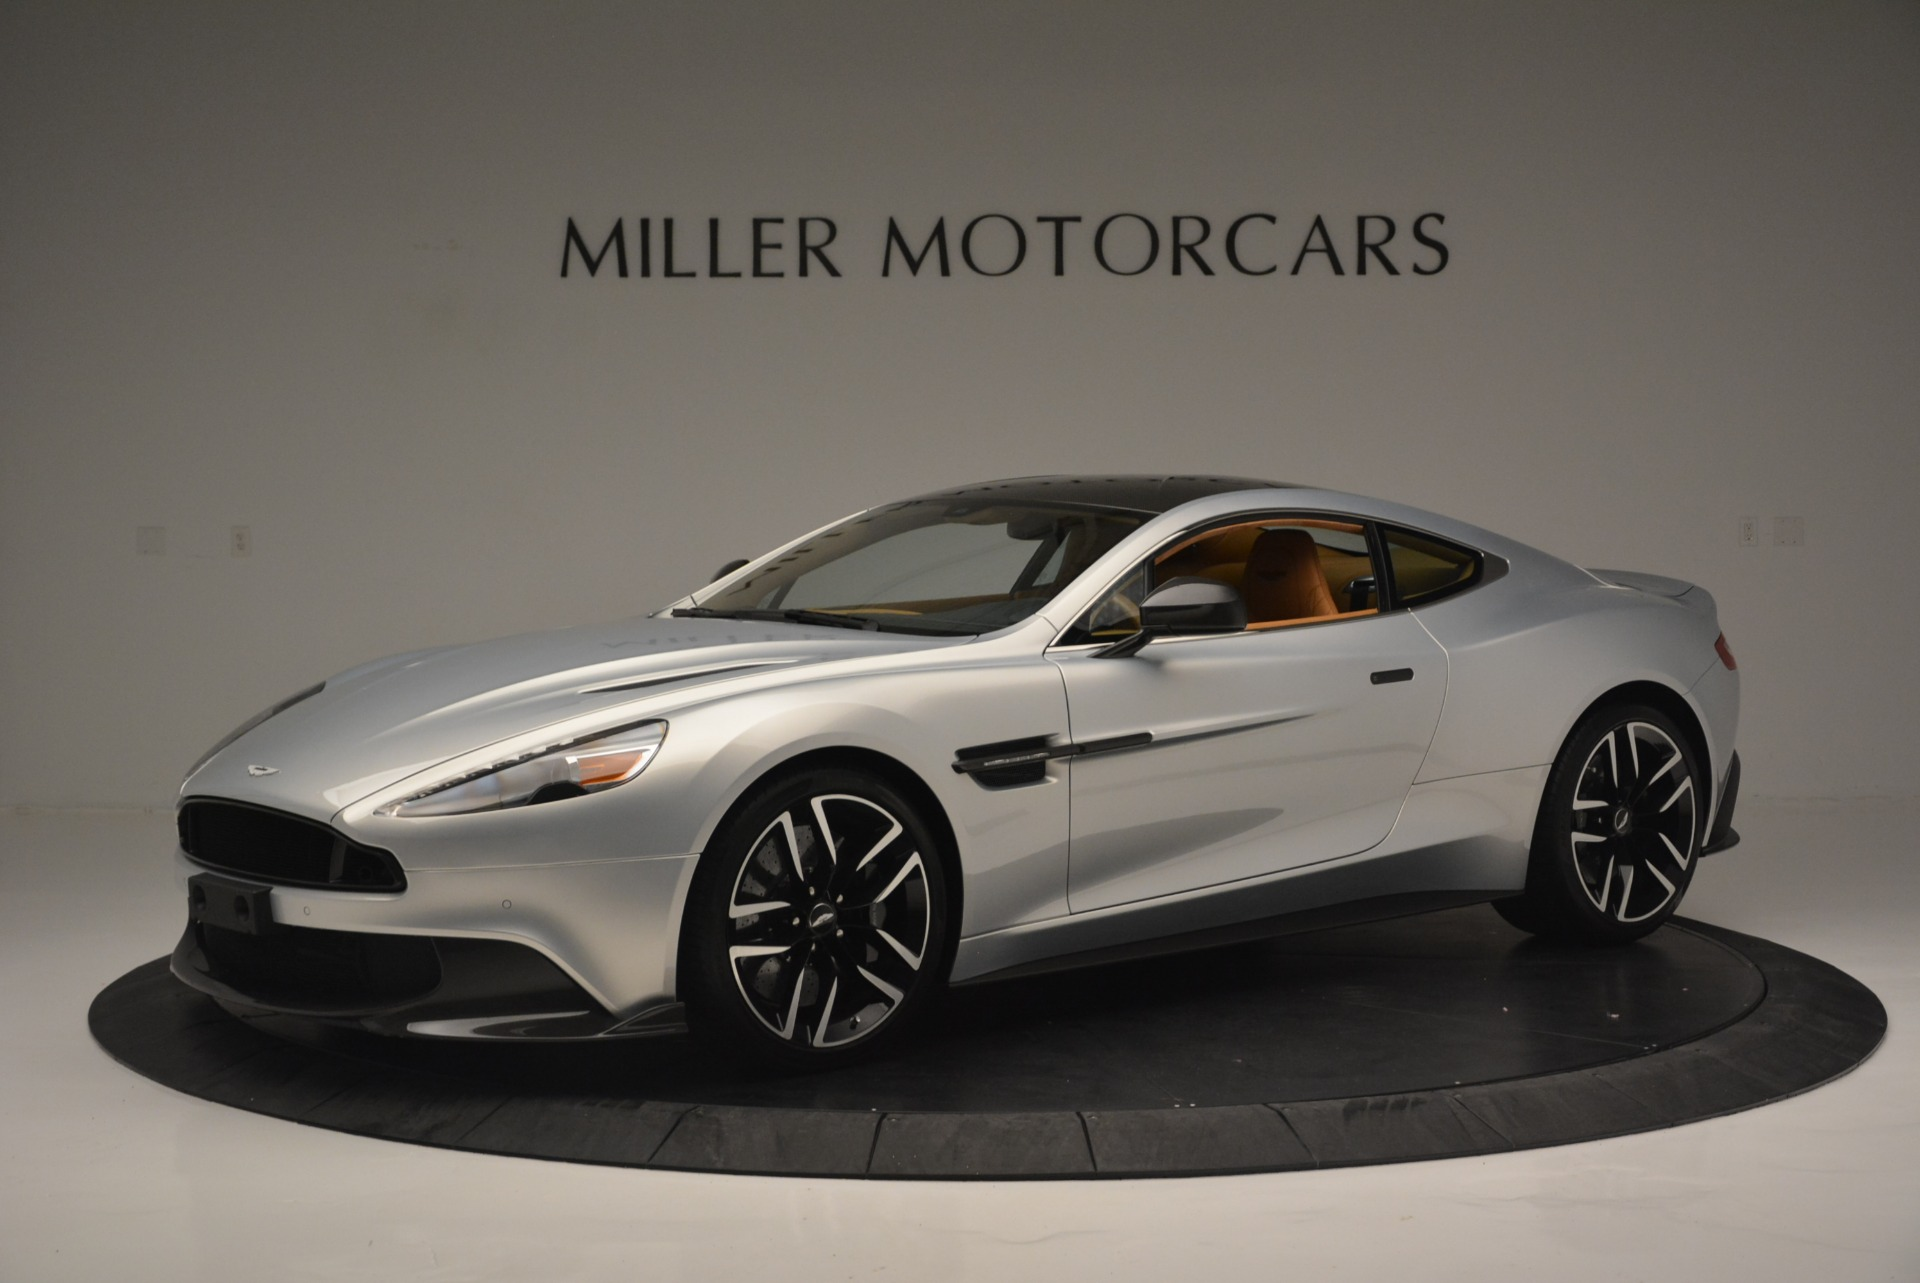 Used 2018 Aston Martin Vanquish S Coupe for sale Sold at McLaren Greenwich in Greenwich CT 06830 1